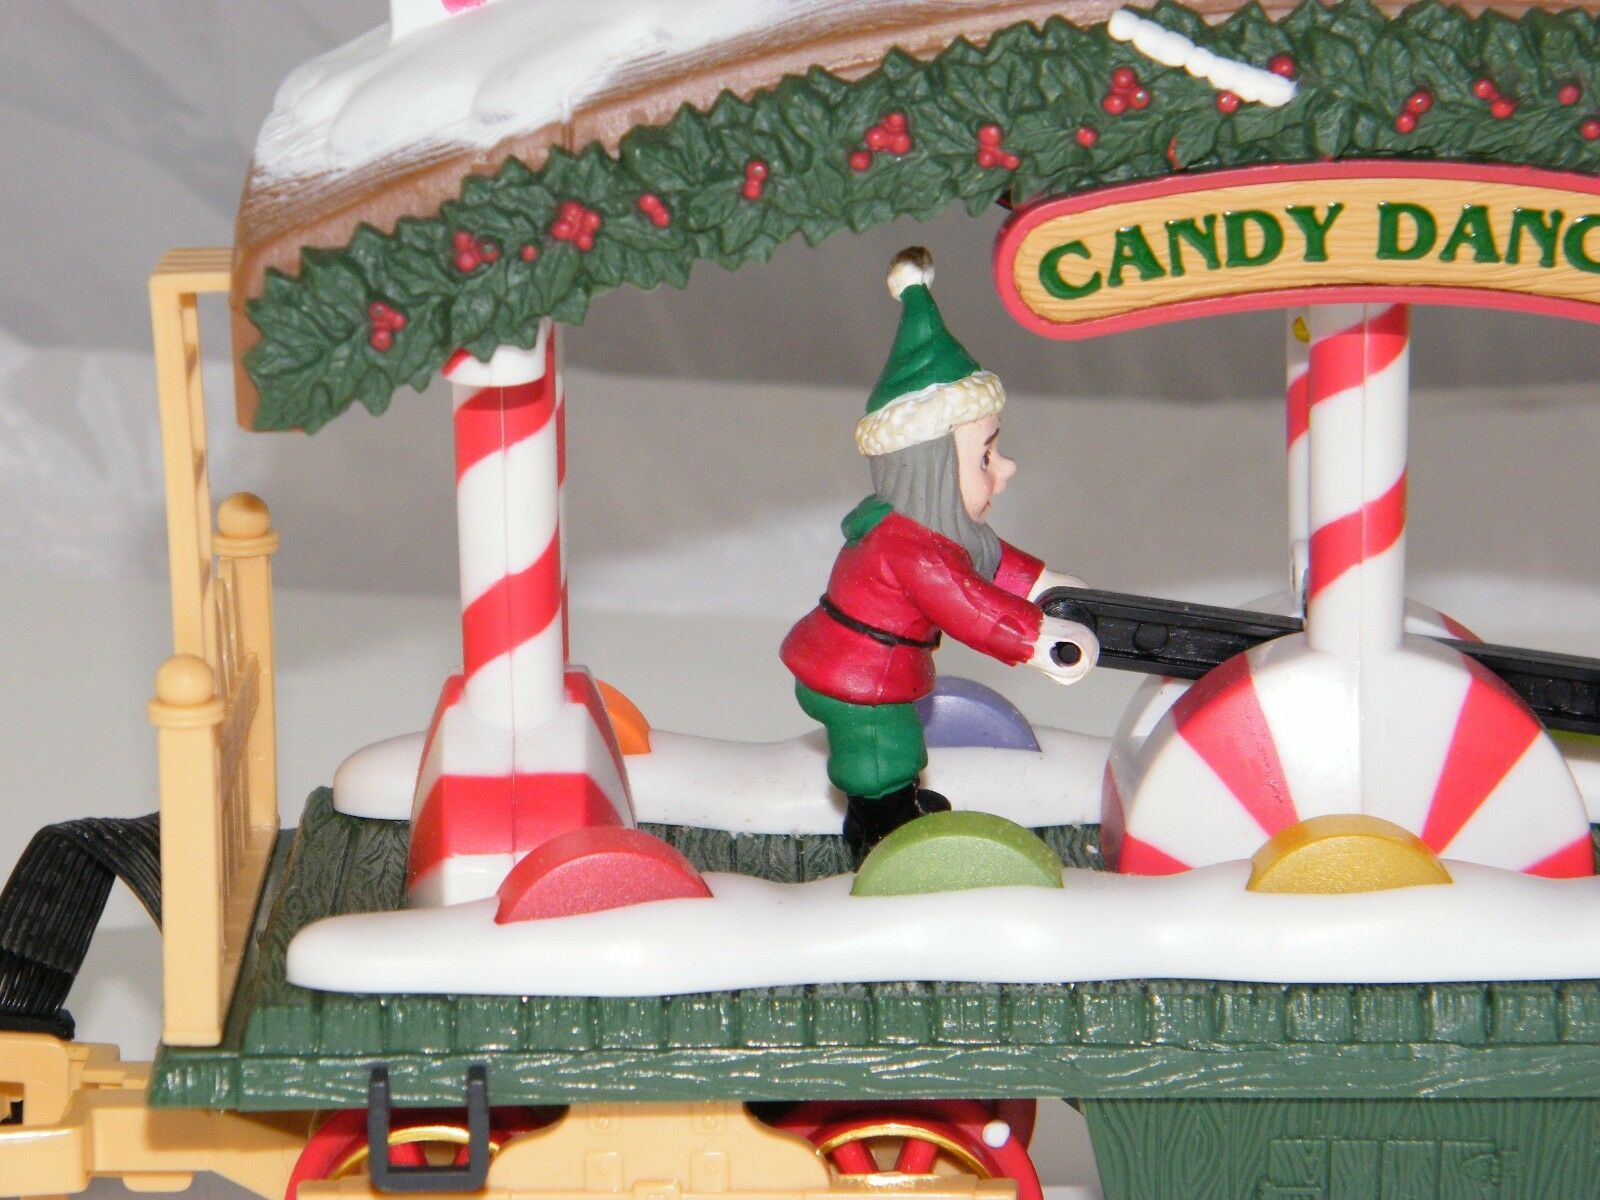 NEW BRIGHT HOLIDAY     CANDY DANCER CAR     NICE fc850c